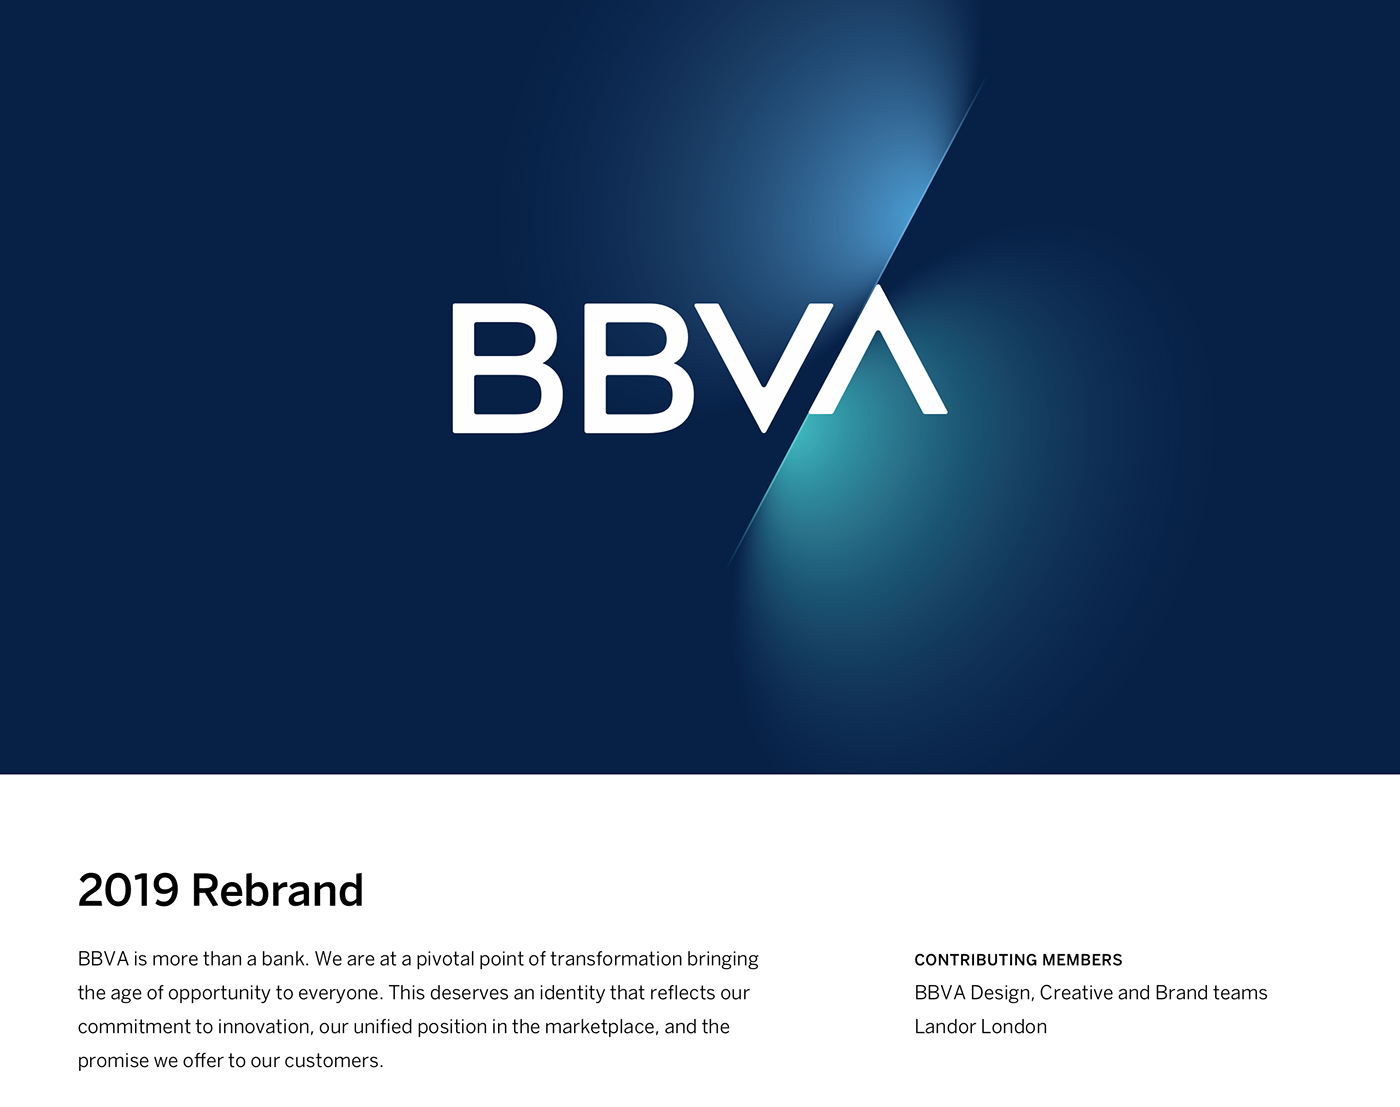 BBVA Rebrand 2019 on Behance.